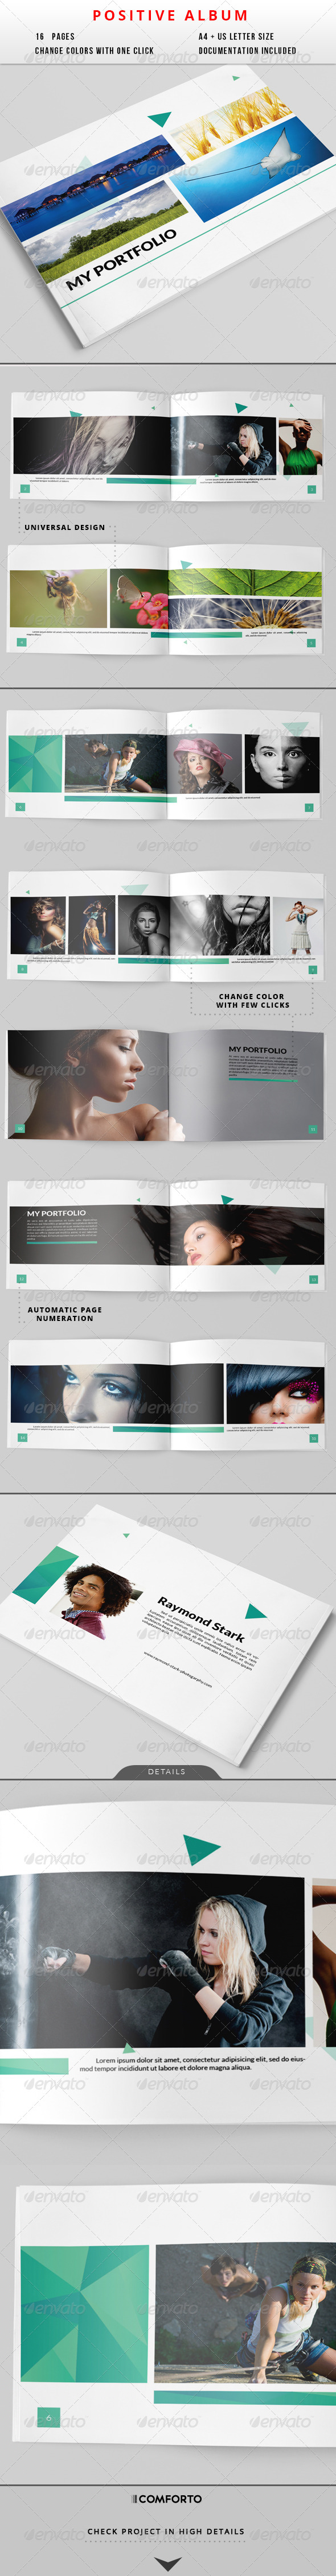 GraphicRiver Positive Album 8177883